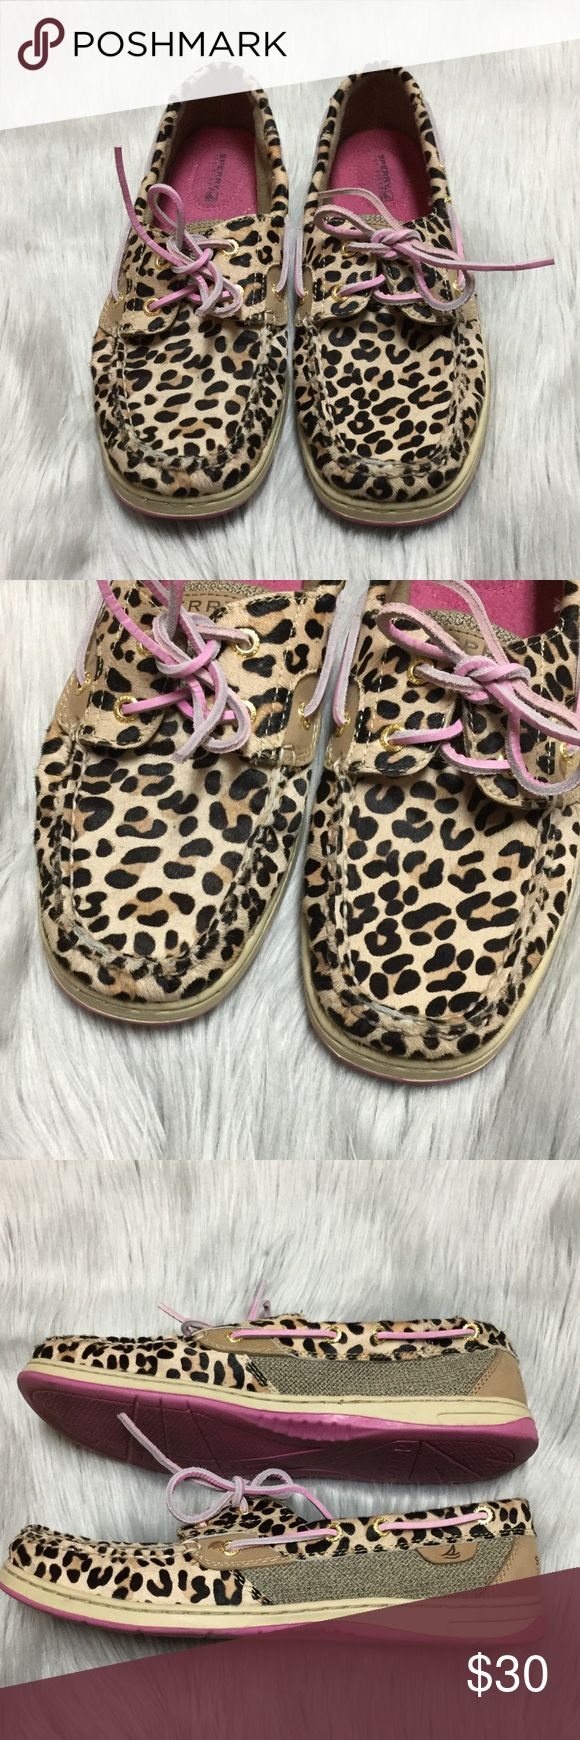 Leopard Sperrys's Leopard/cheetah print. Worn once. Pink laces and sole. Sperry Top-Sider Shoes Flats & Loafers